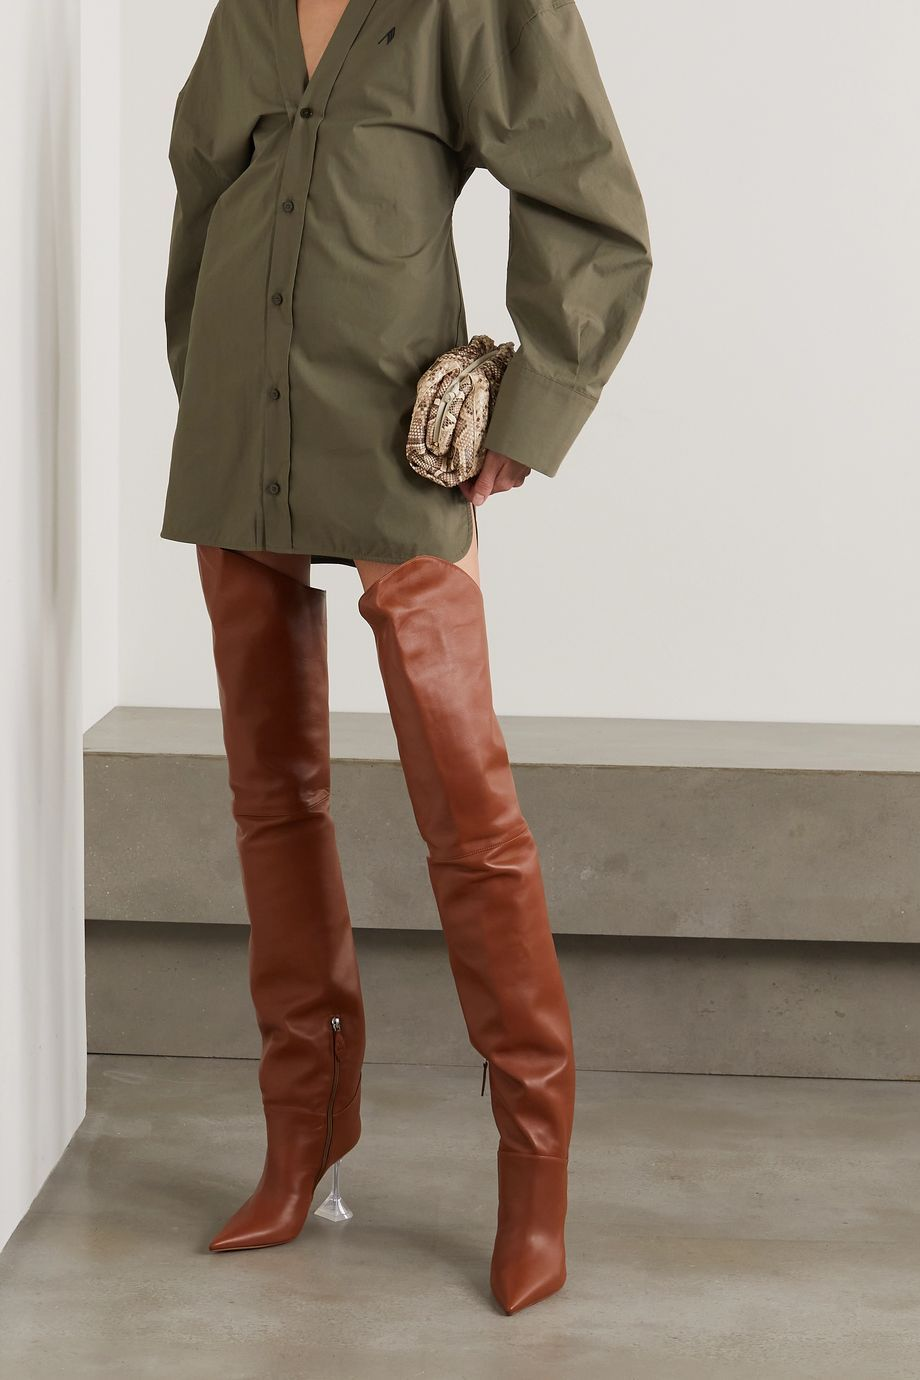 Pin on Thigh high boots